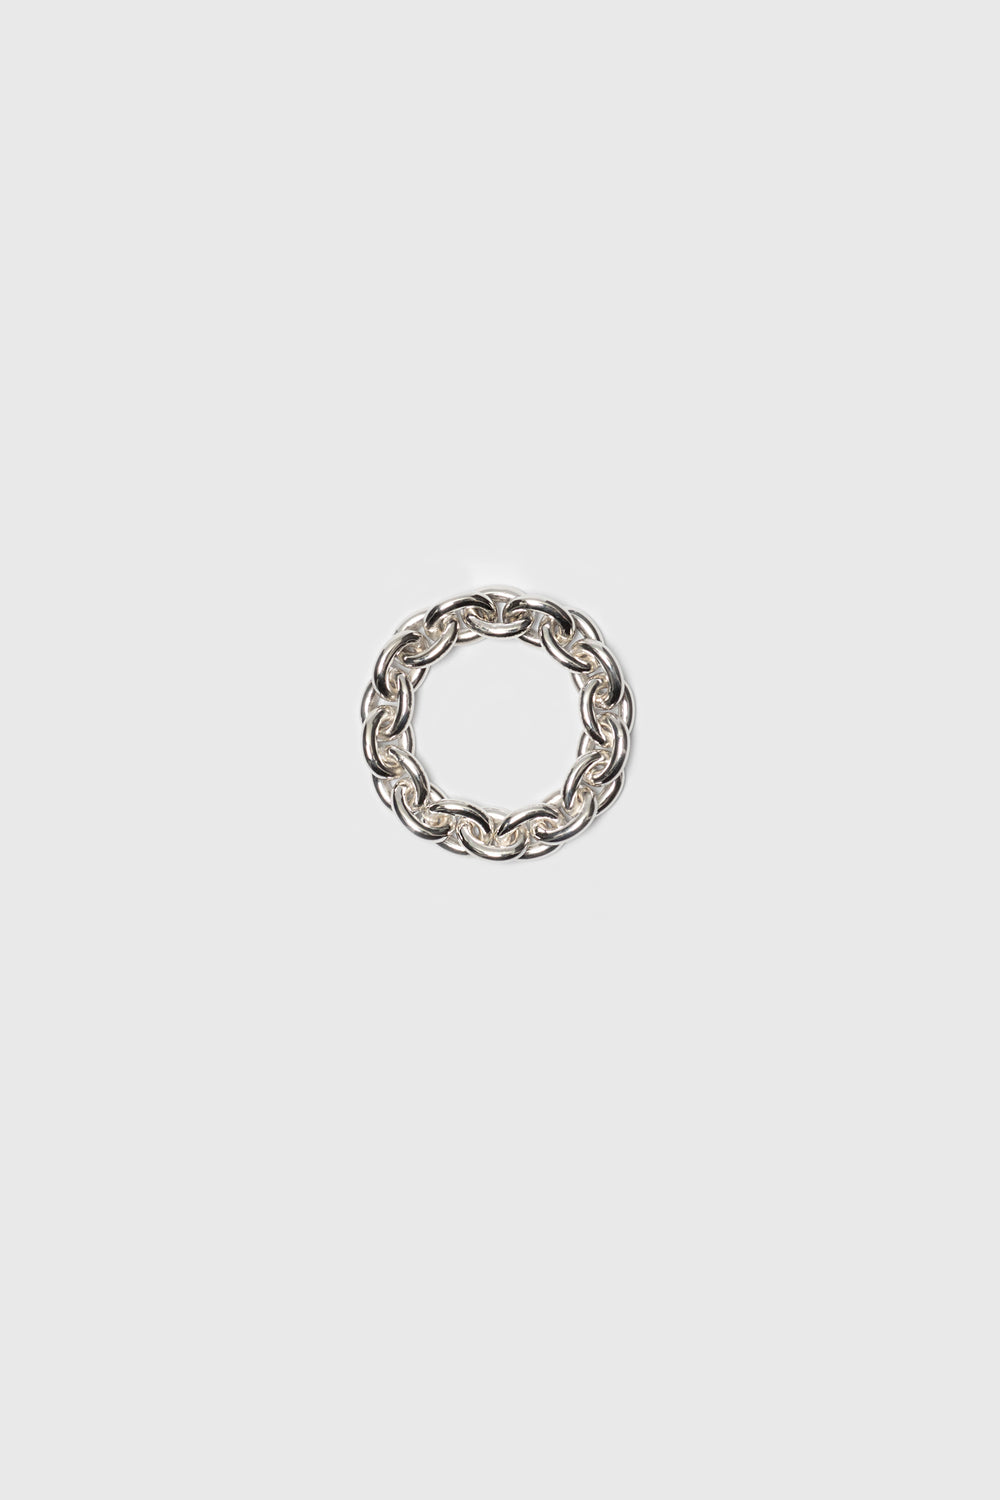 Flexible chain ring with a high gloss finish. Silver jewelry handmade in Berlin.